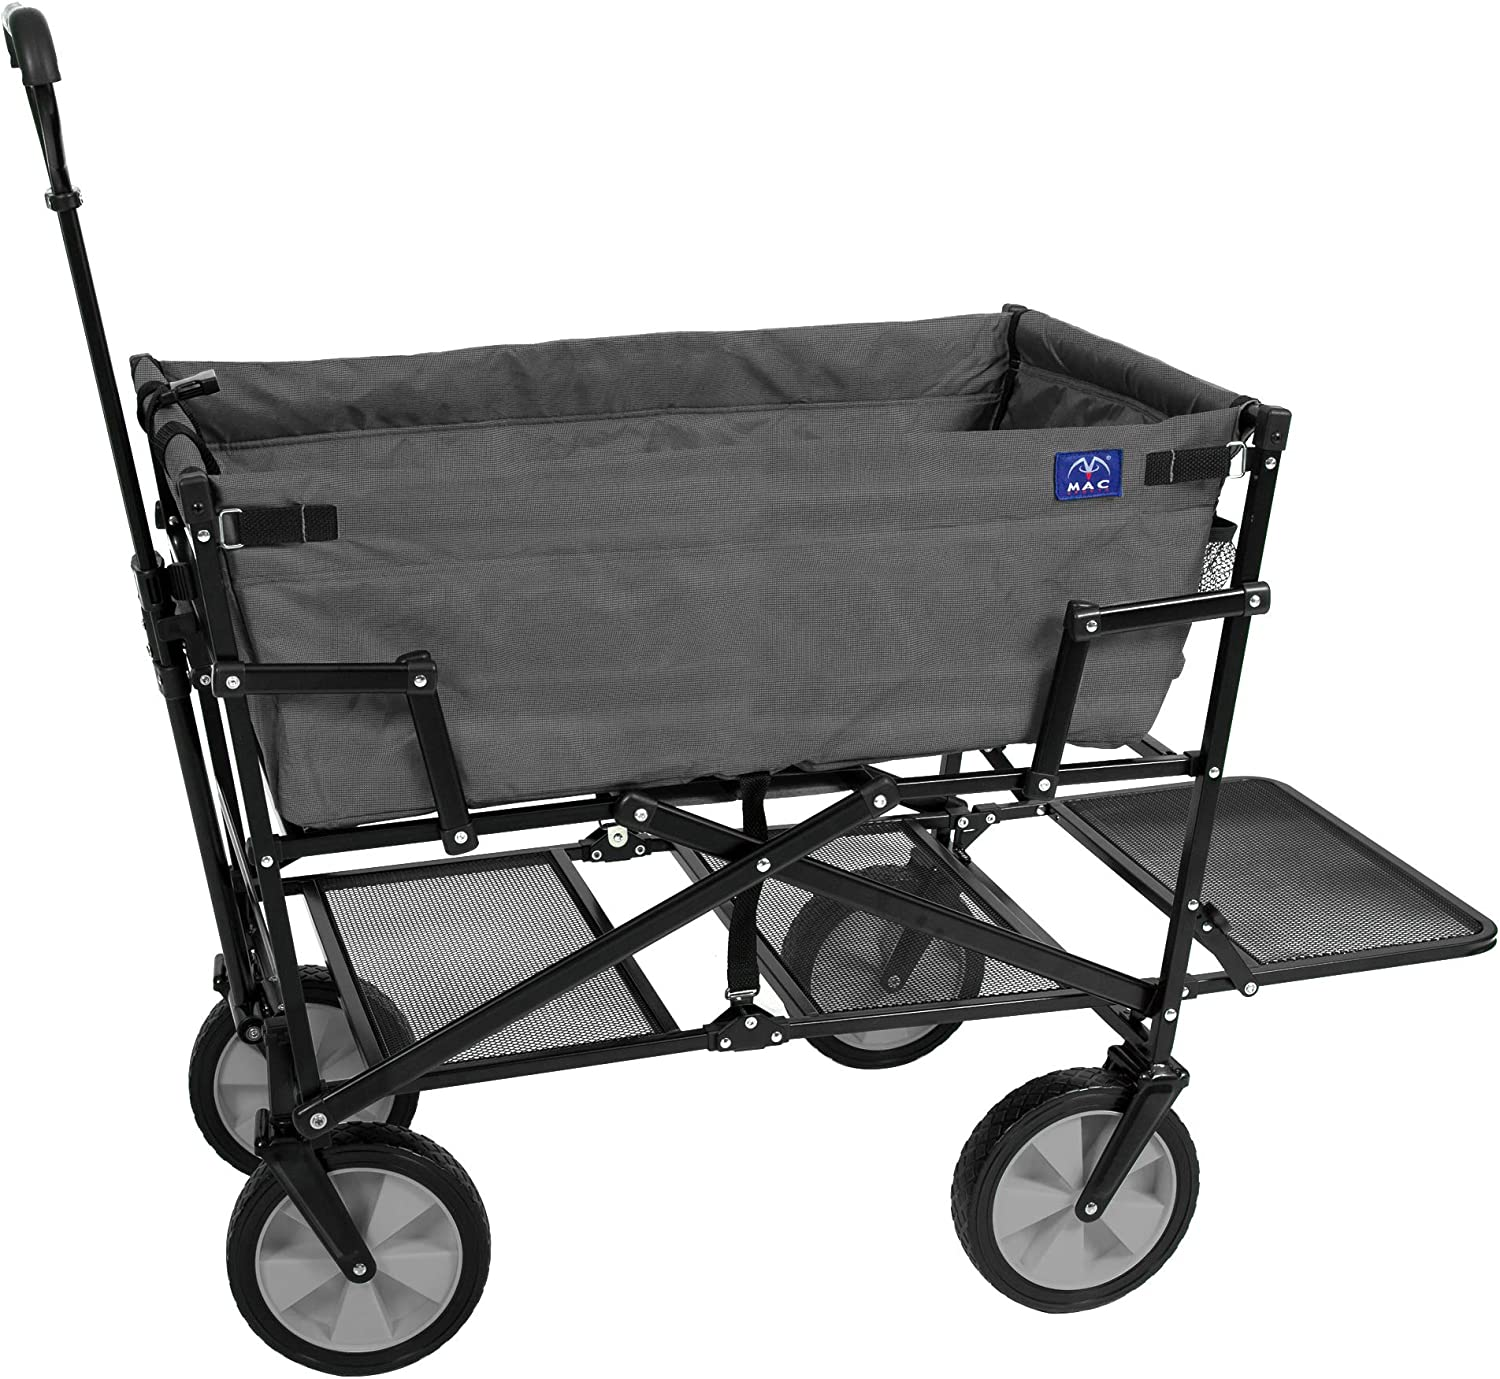 Mac Sports Double Decker Collapsible Outdoor Utility Wagon Folding Pull Cart, for Sports Baseball Pool Camping Fishing, Collapsable Fold up Wagon with Wheels, Heavy Duty Steel, Two Tone Gray